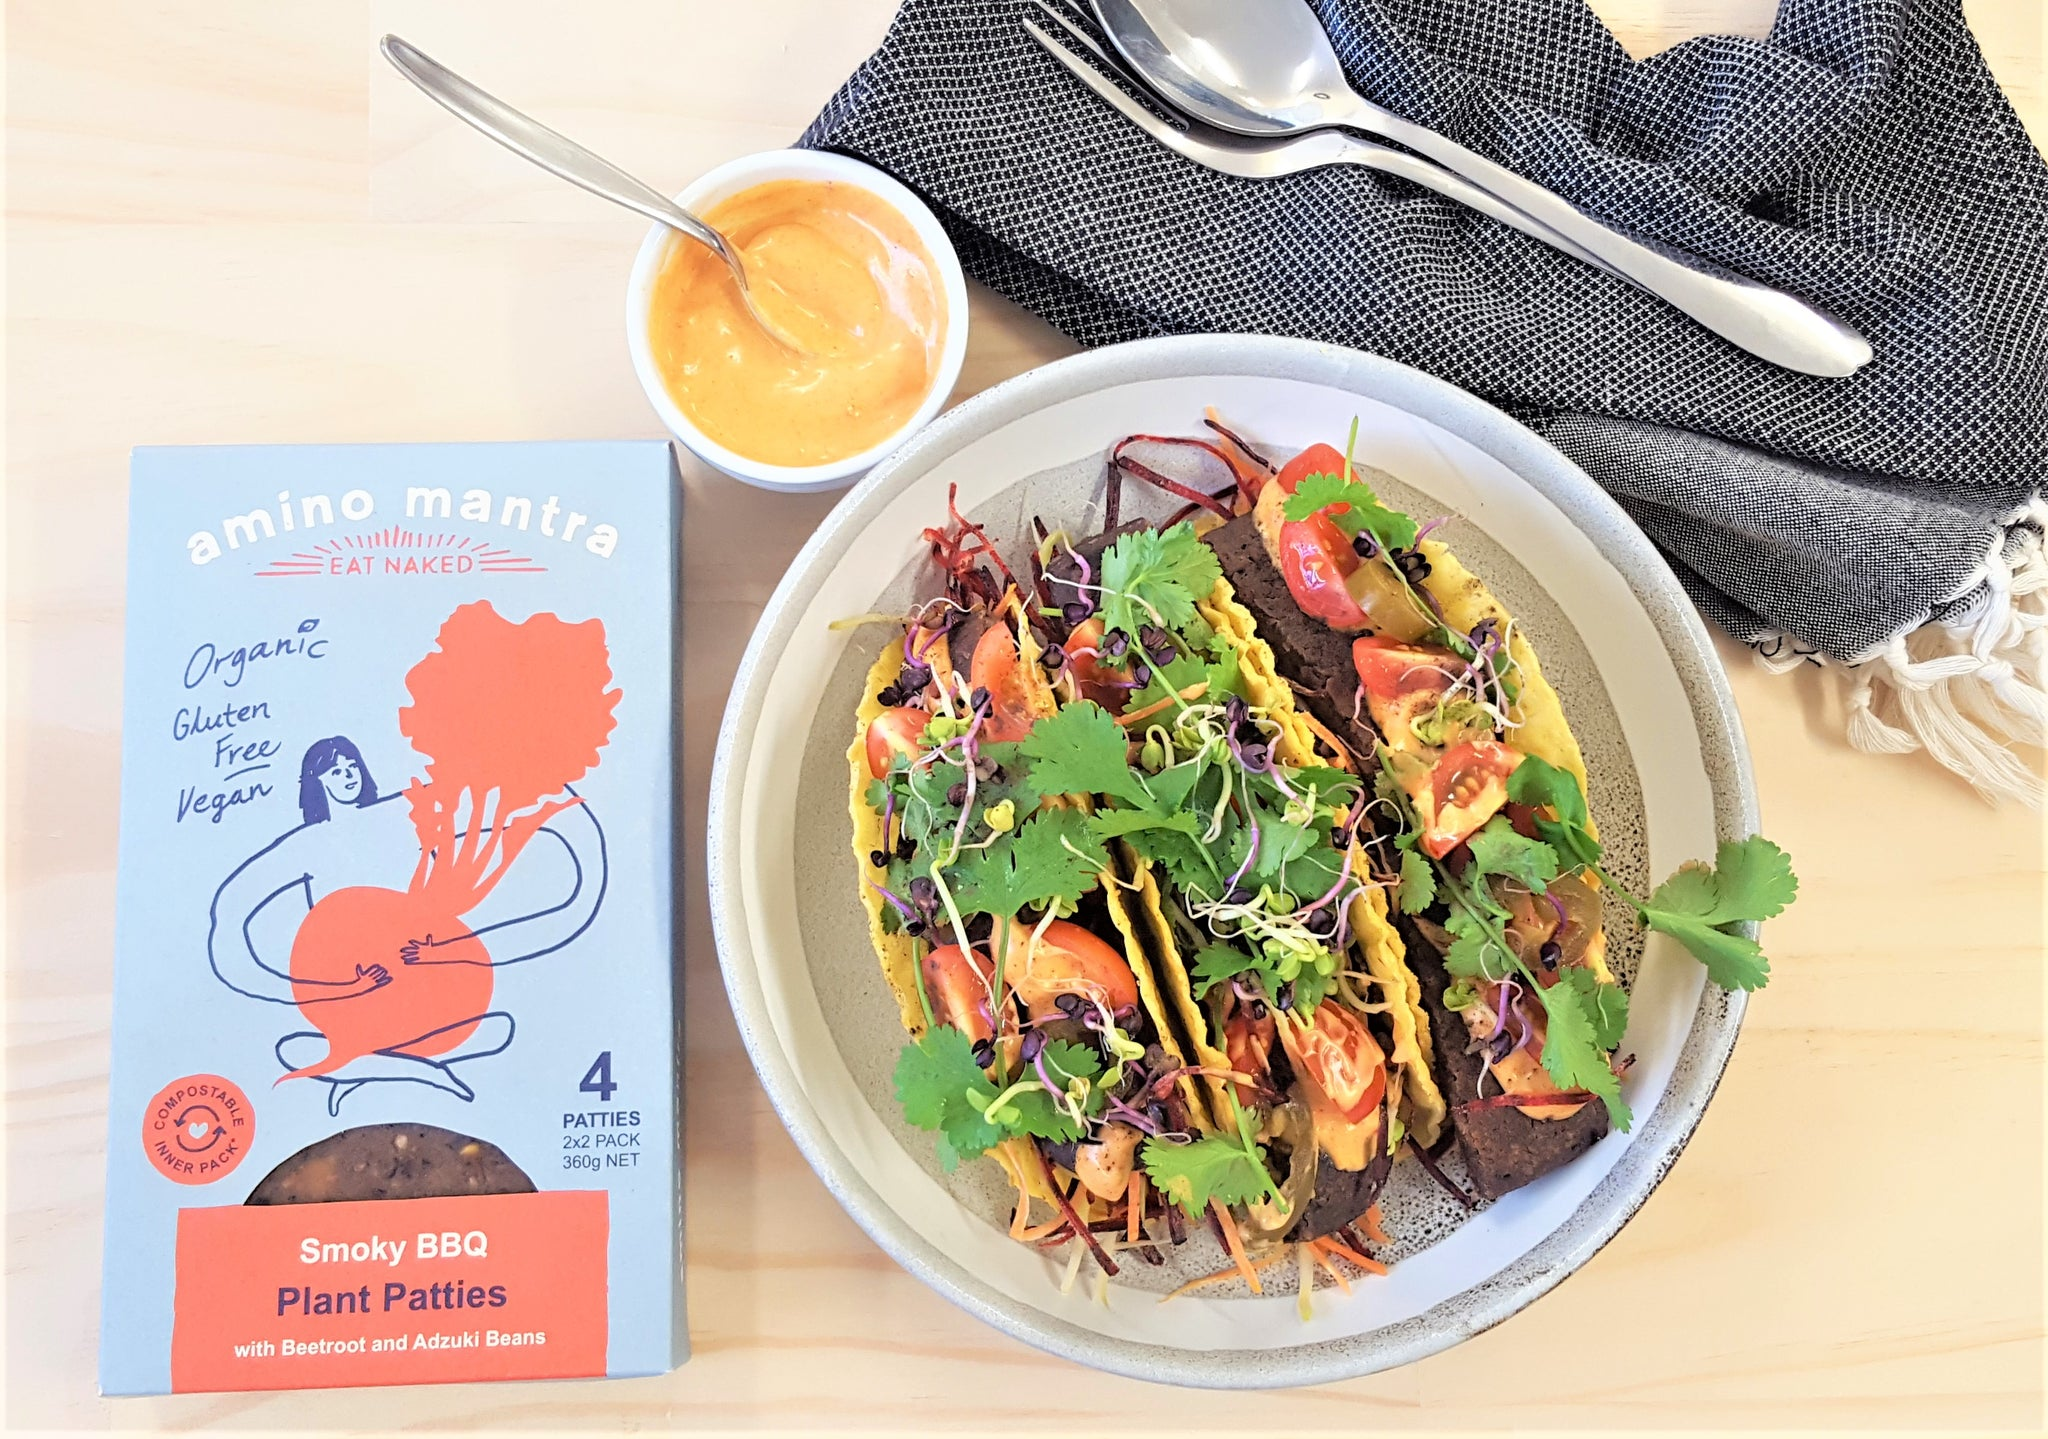 Amino Mantra Vegan Taco with Smoky BBQ Plant Patties